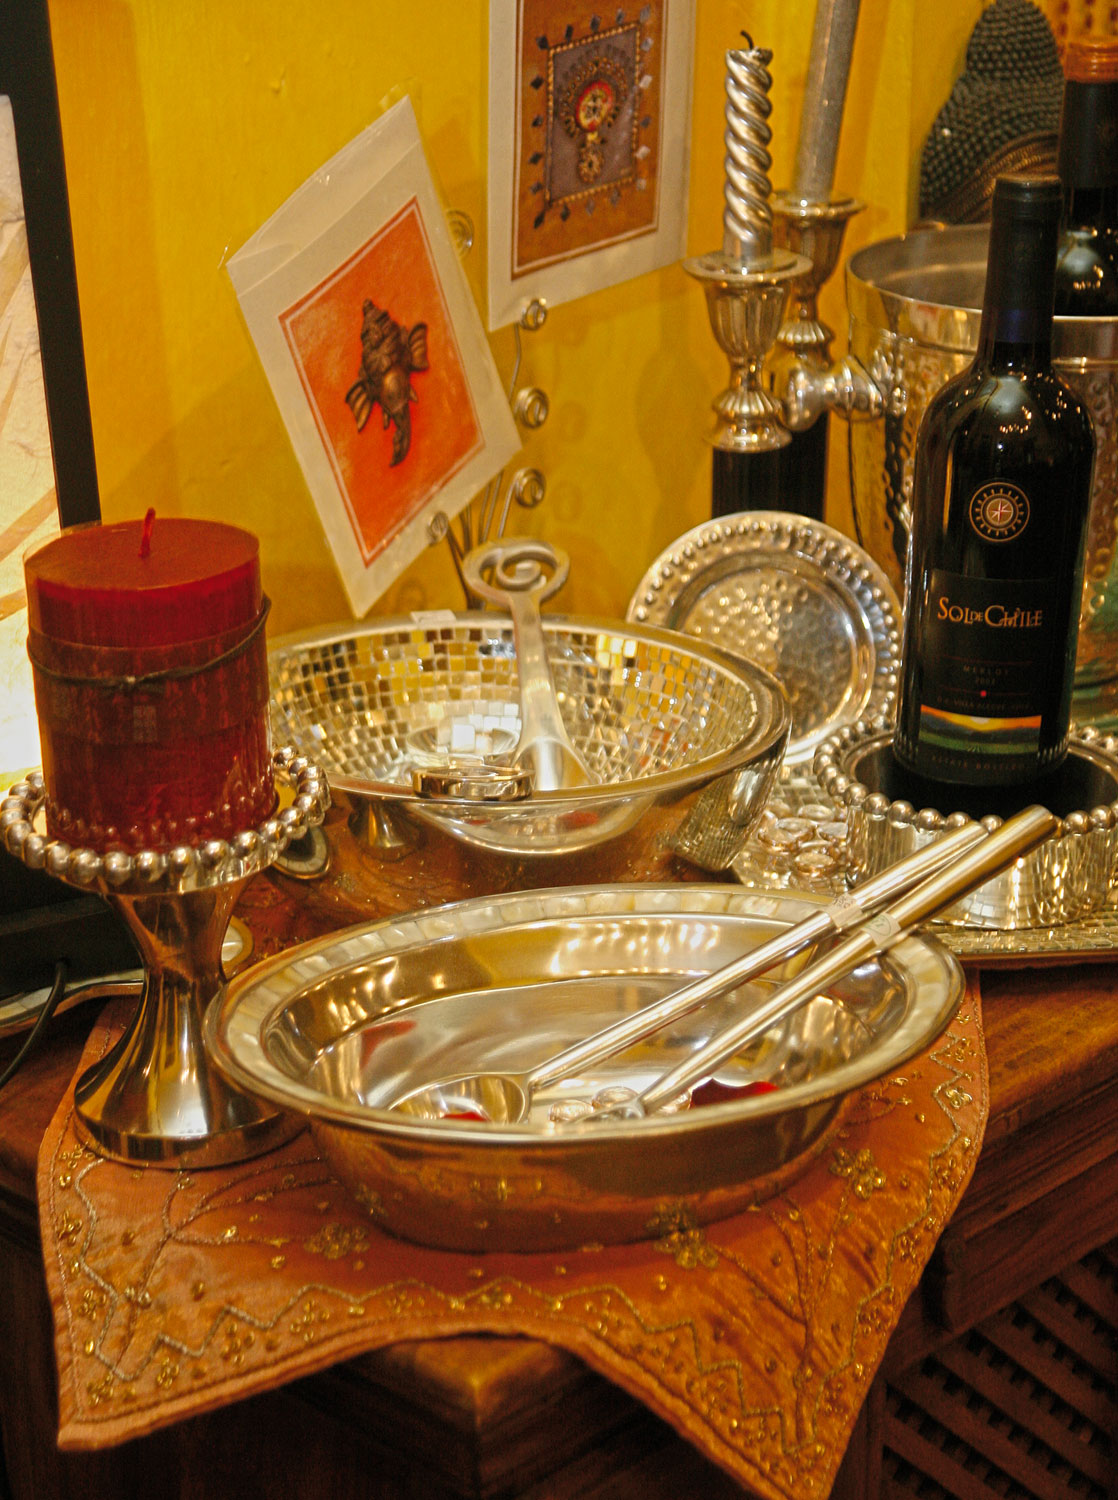 Decorative bowls, picture frames and candle holders at House of Jaipur. Photograph by Shirley Bahadur